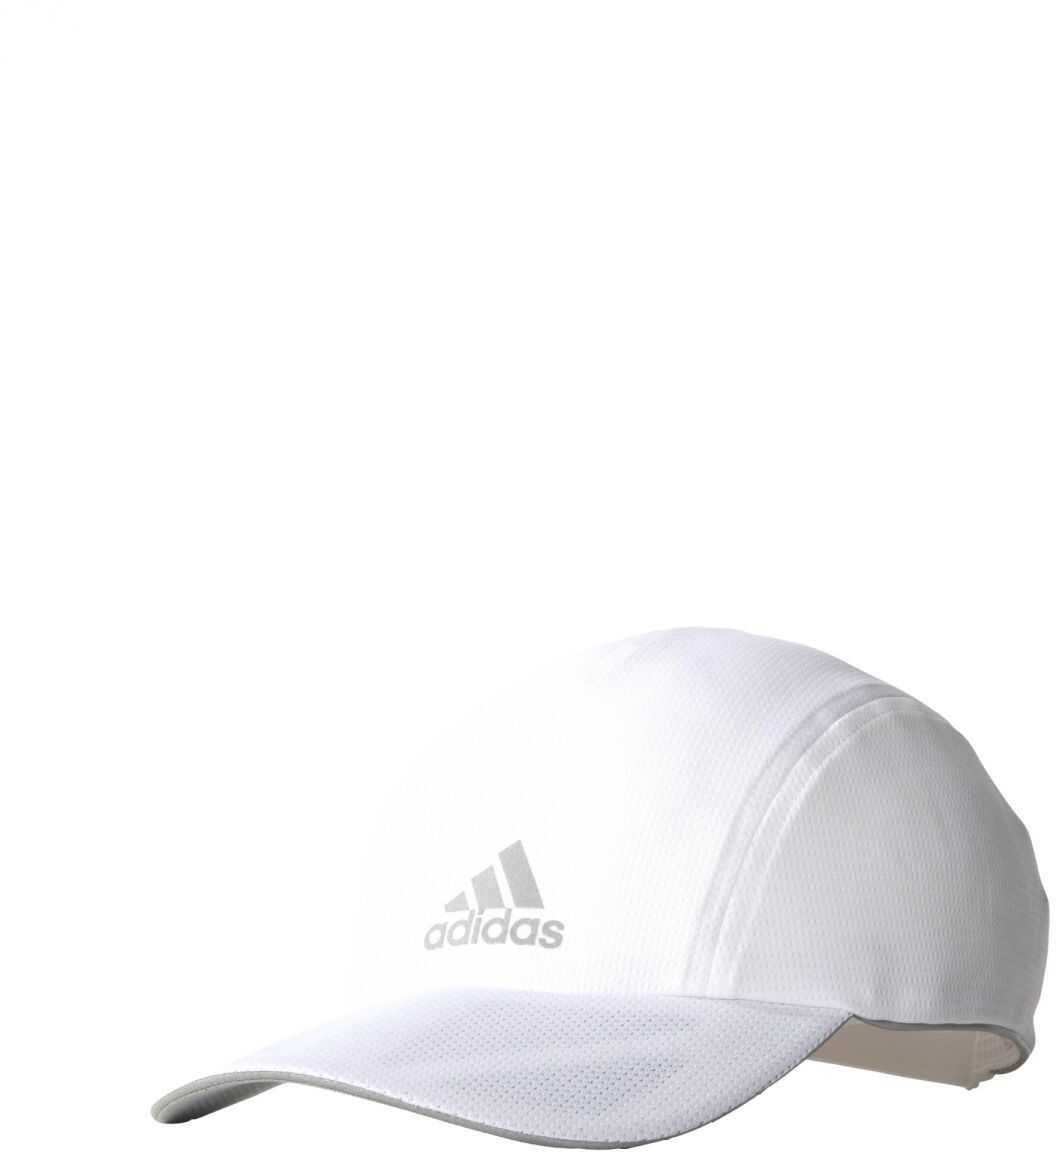 adidas RUN NO FLY CAP WHITE/CLGREY/REFSIL